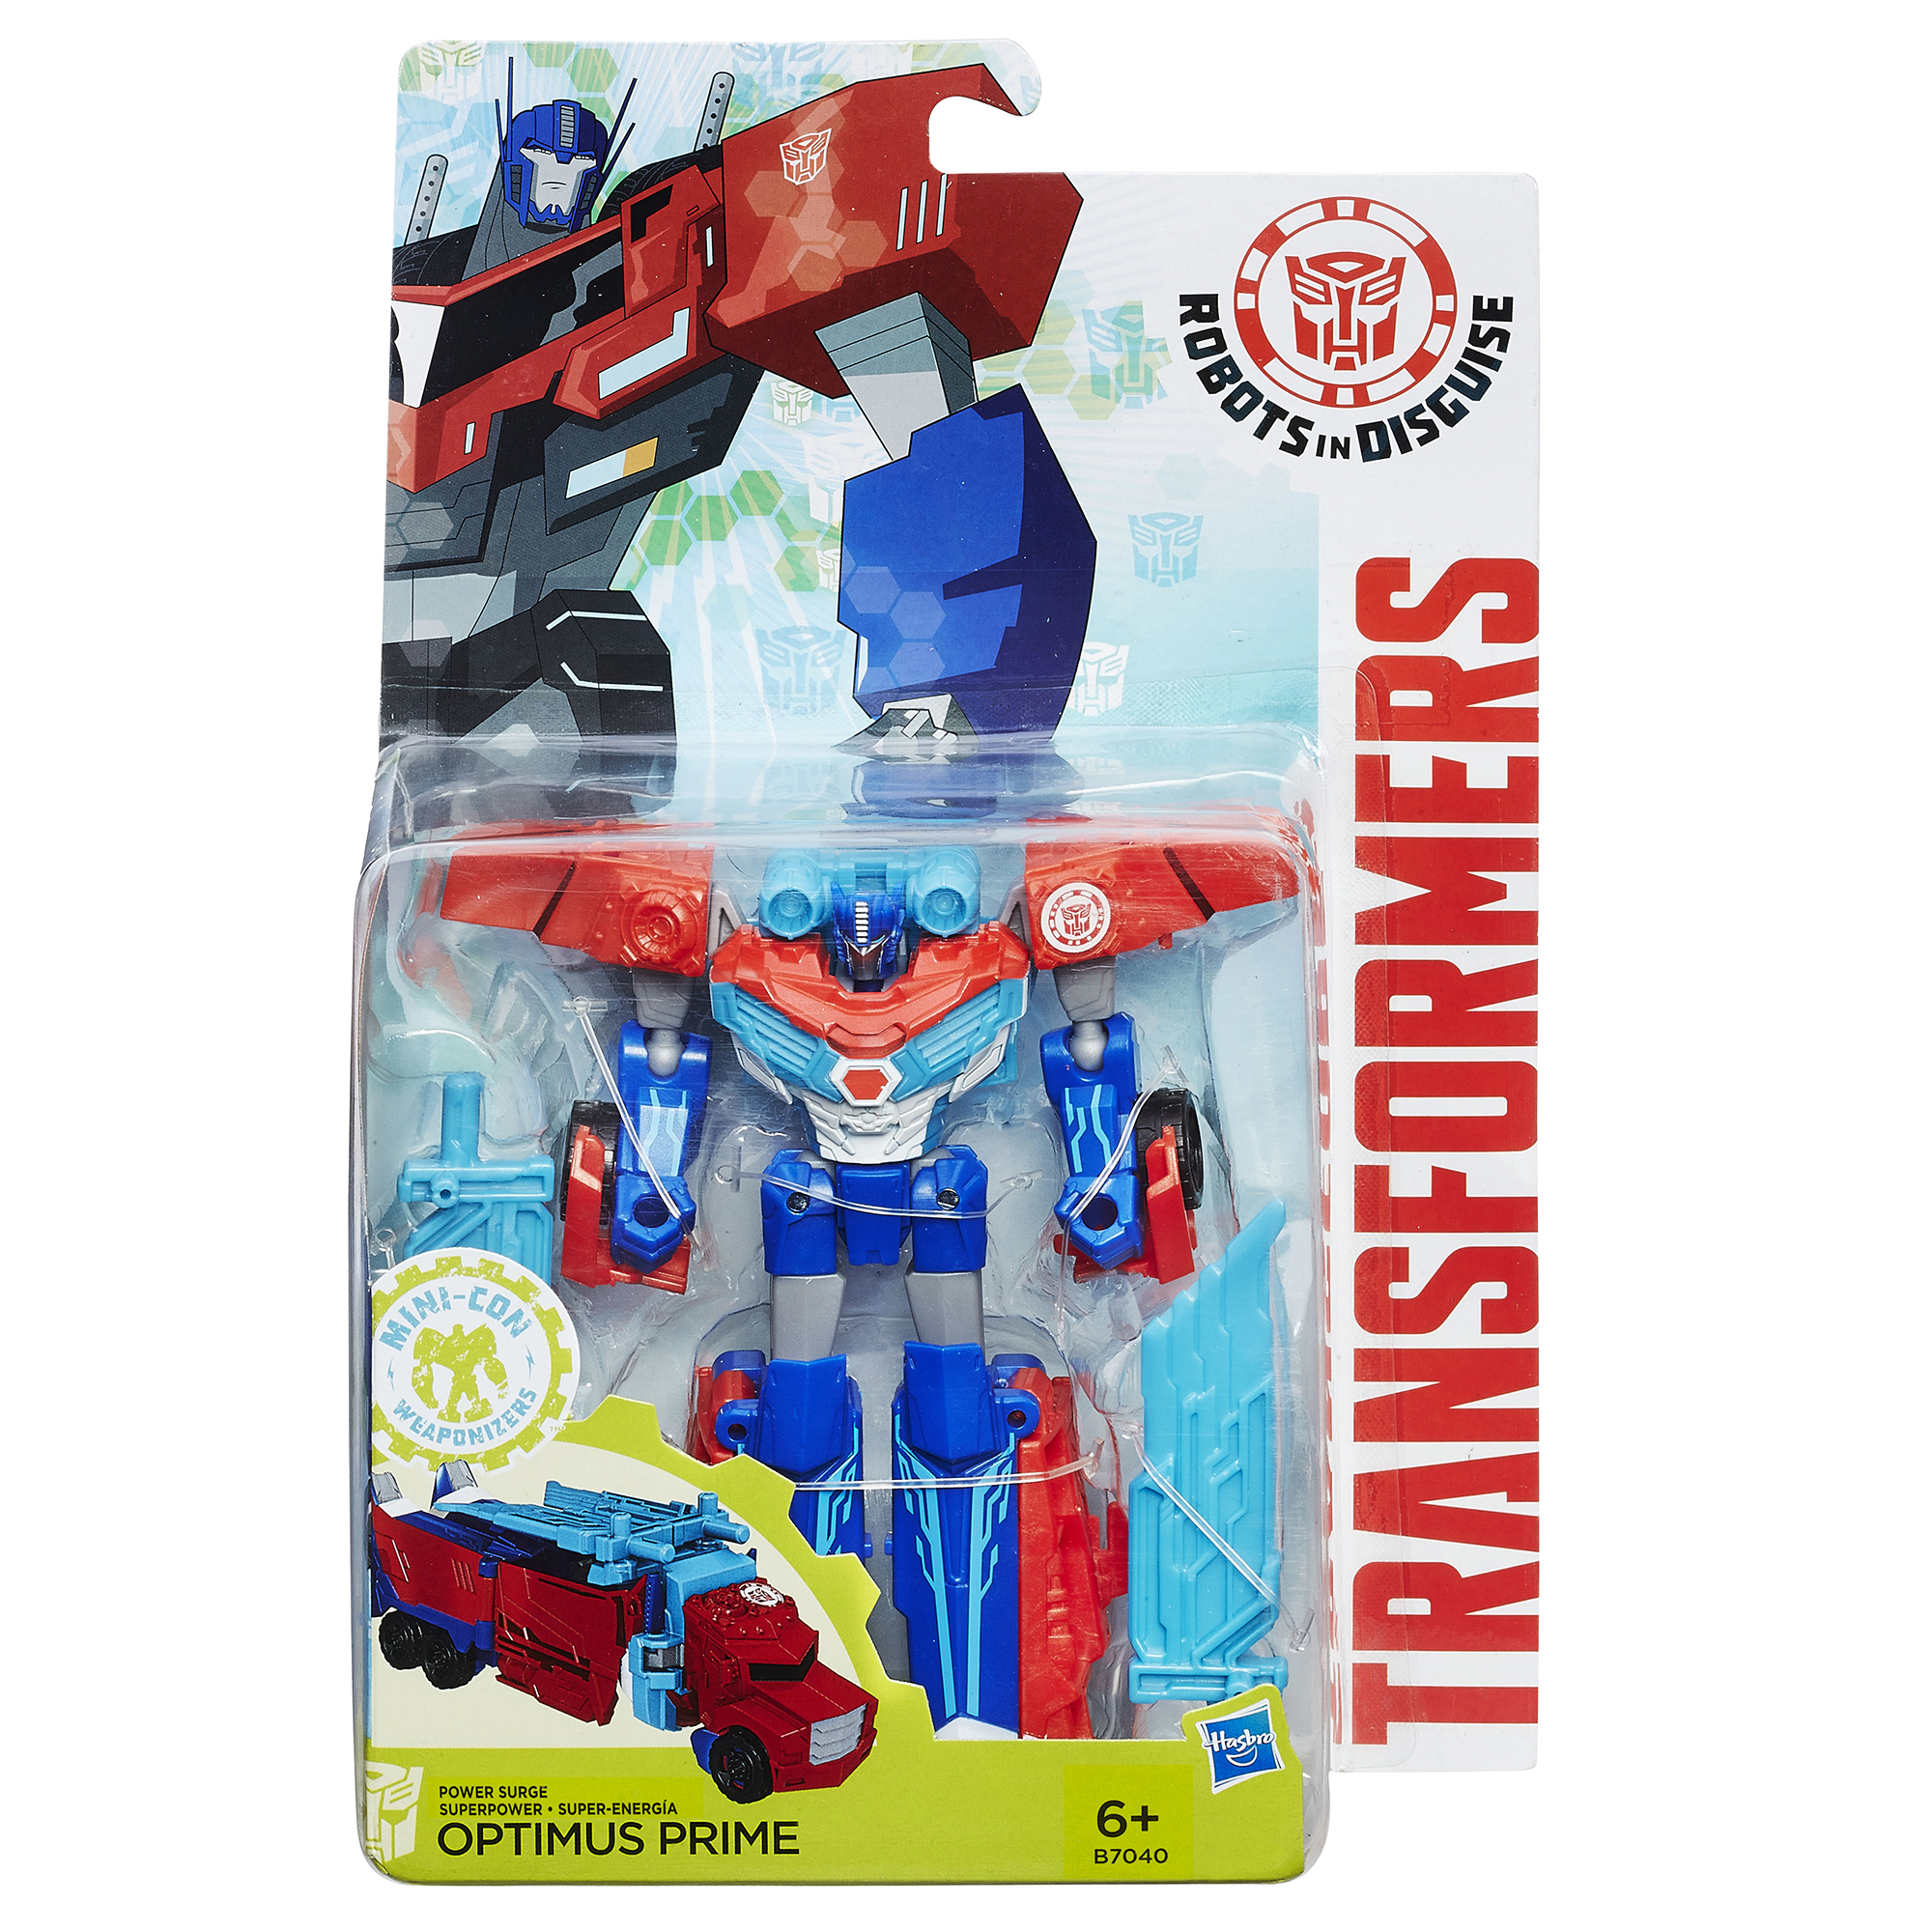 Transformers Robots In Disguise Warrior Class Figure Asst